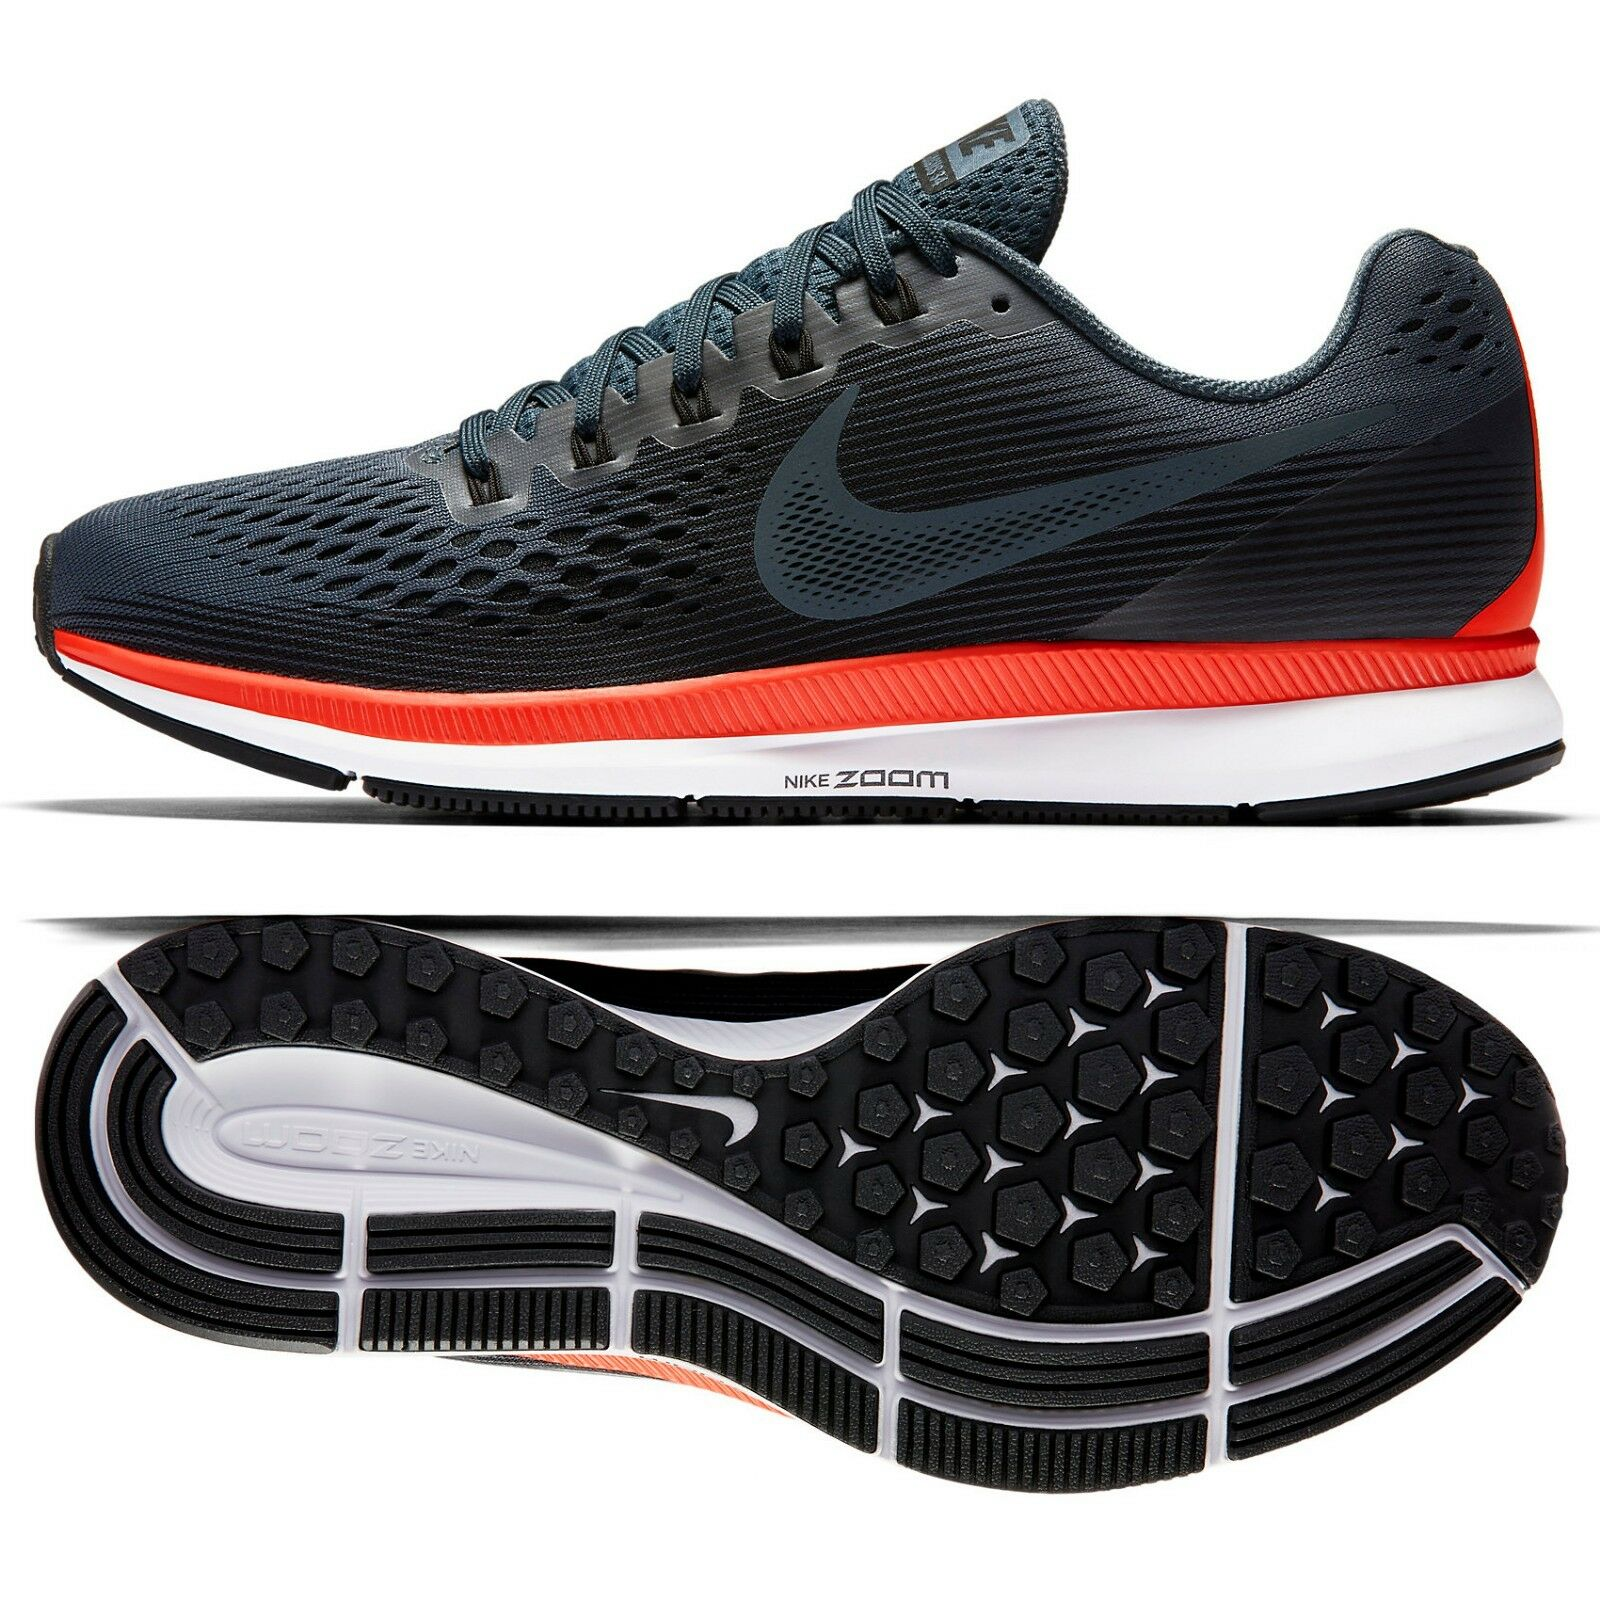 Nike Air Zoom Pegasus 34 880555-403 bluee Fox Crimson Men's Running shoes Sz 14